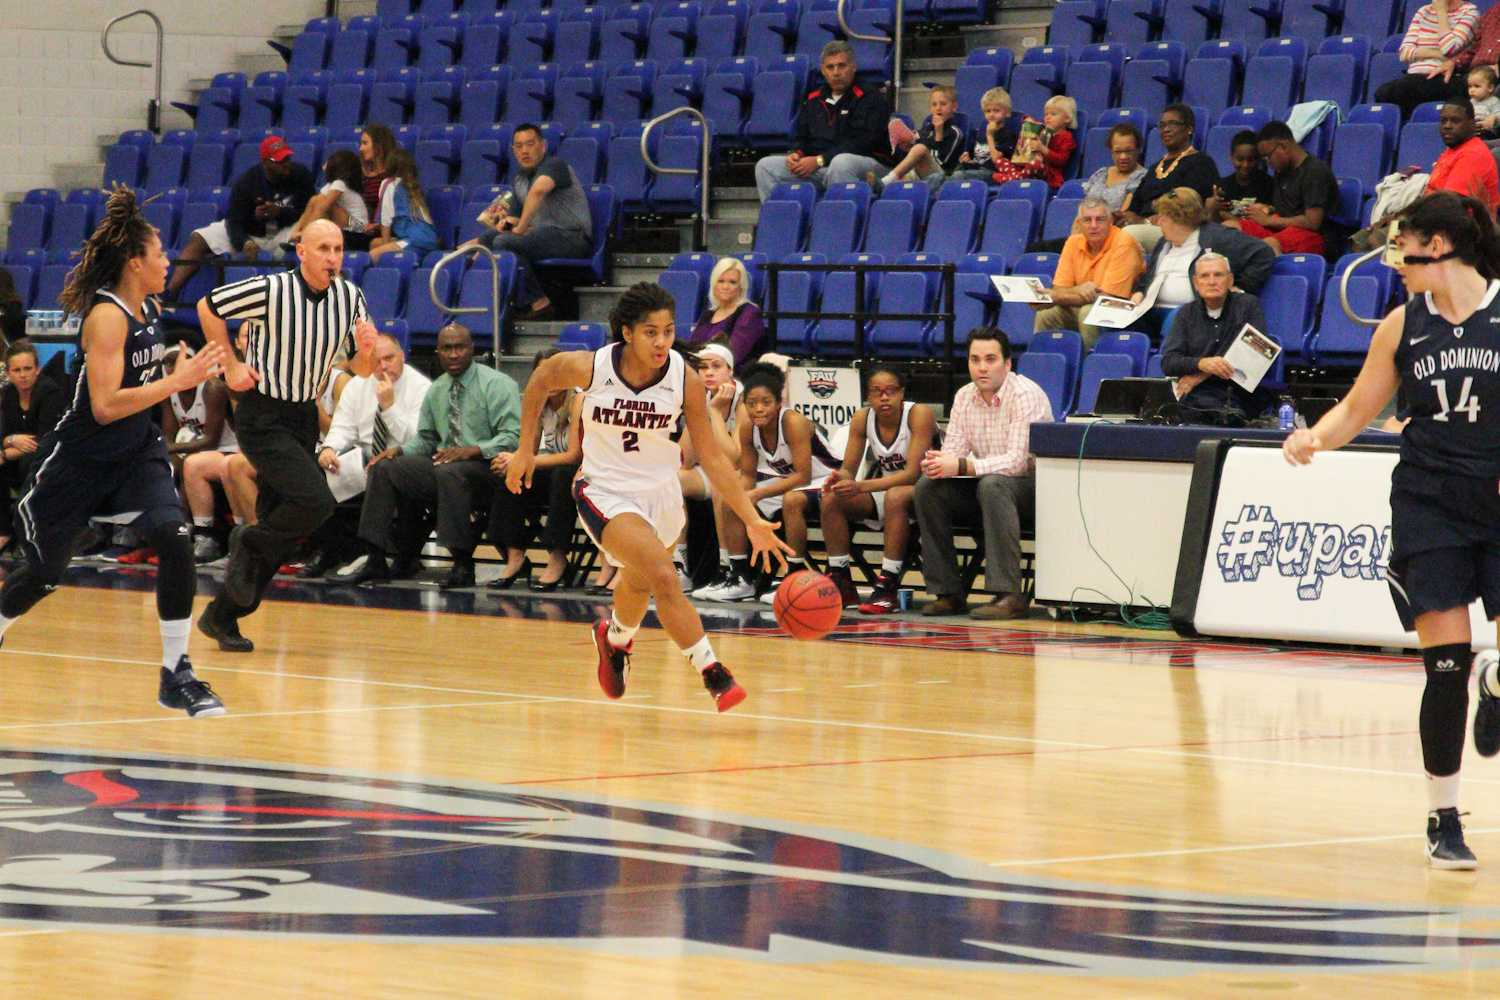 Shaneese Bailey (2) drive to the basket in the first half of play against Old Dominion.